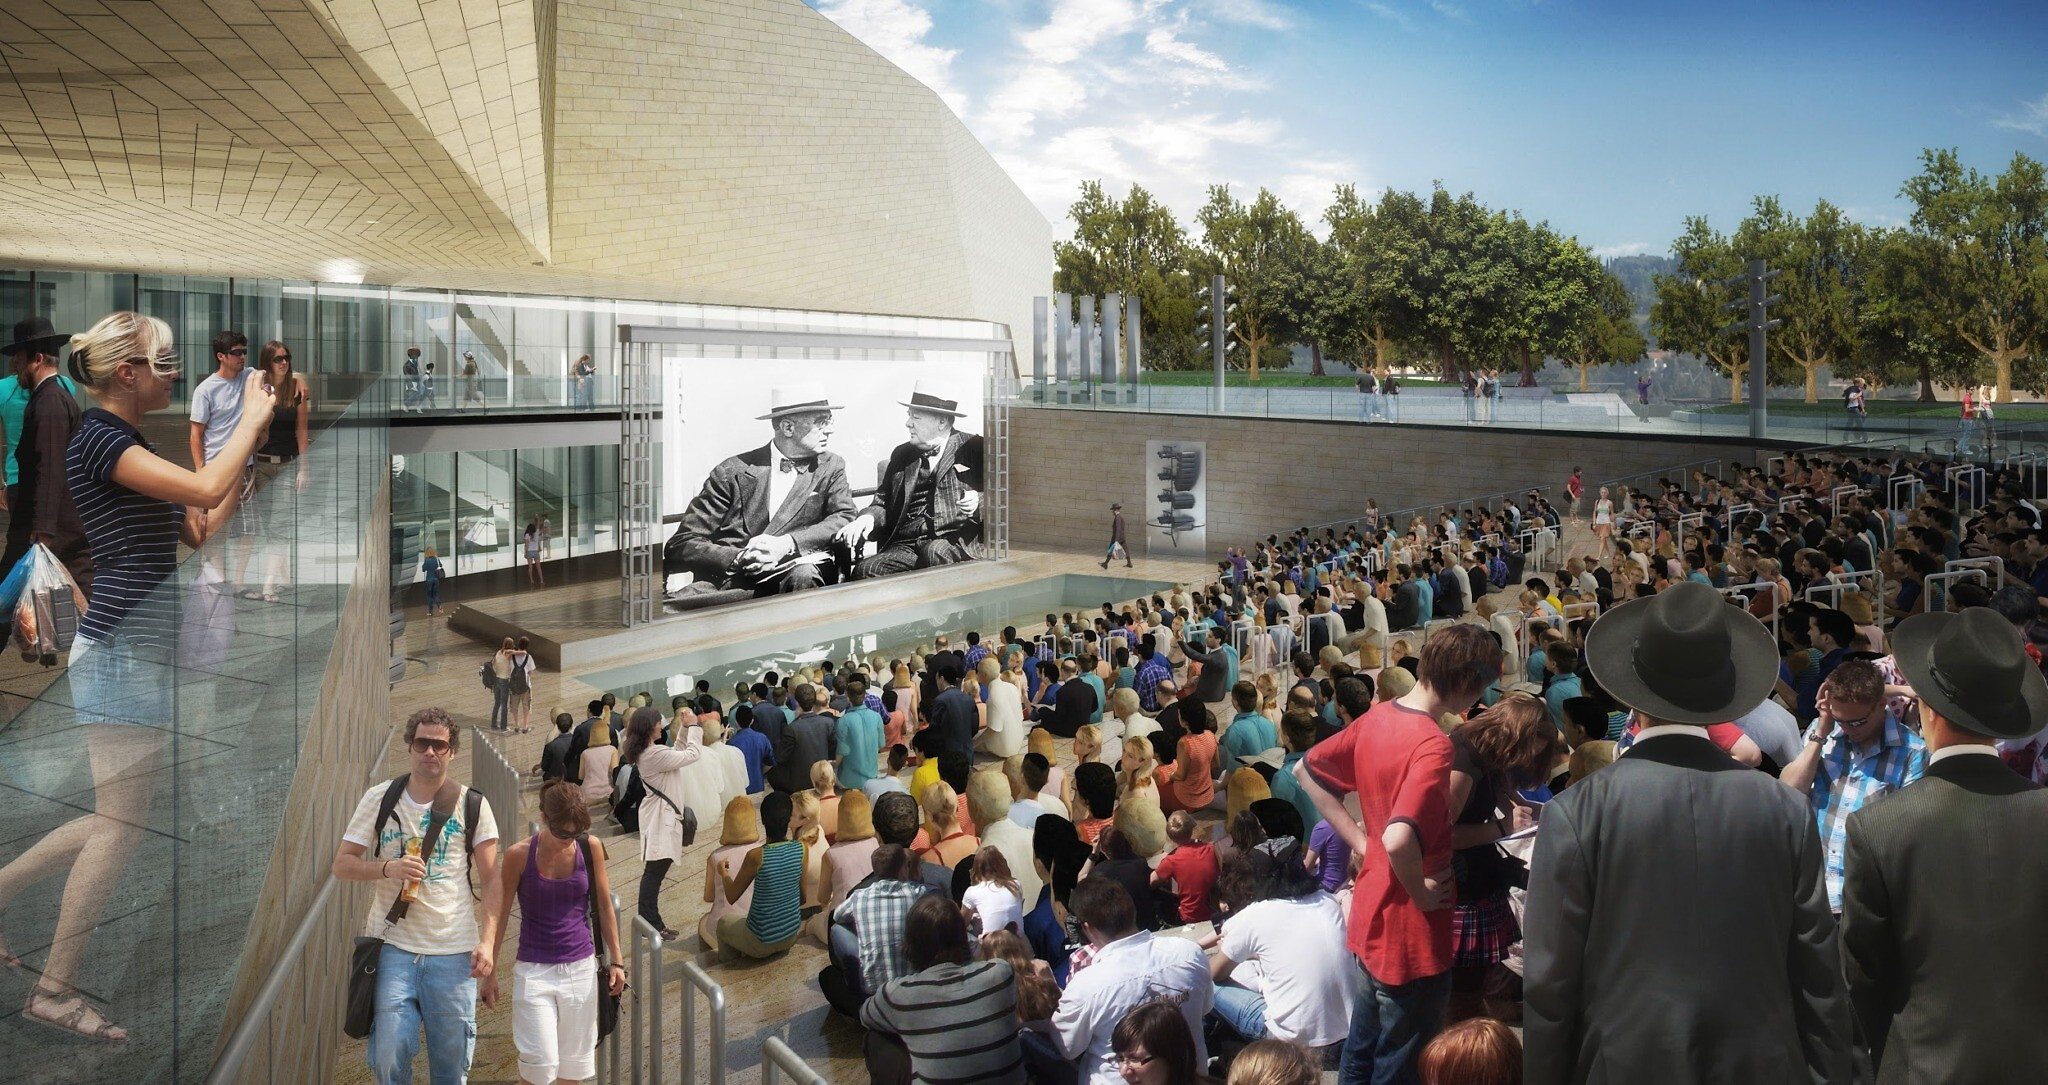 Artist's impression of the Museum of Tolerance, Jerusalem's outdoor, 1,000-seat amphitheater. (Courtesy, Simon Wiesenthal Center)